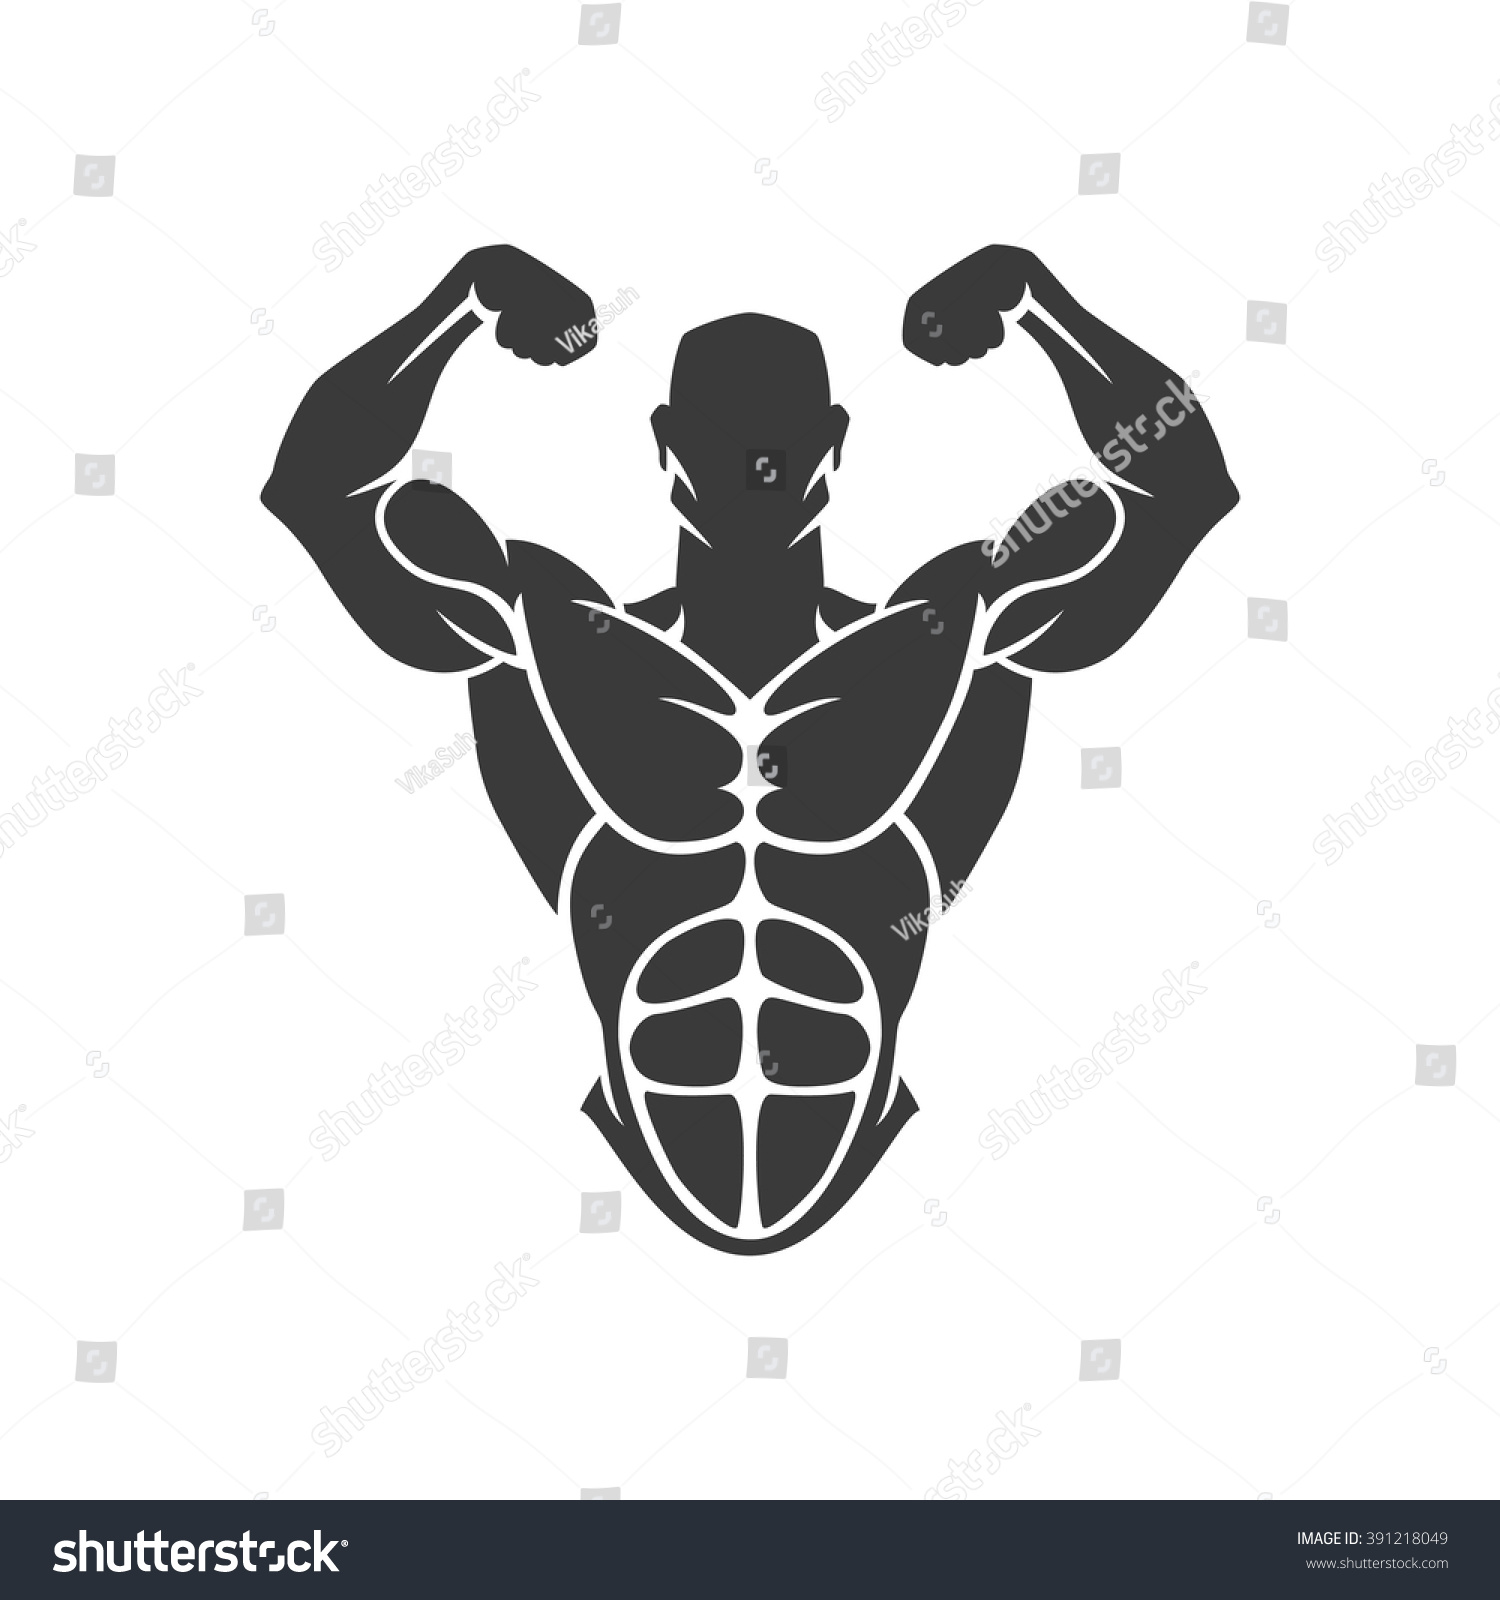 vector object and icons for sport label gym badge fitness logo